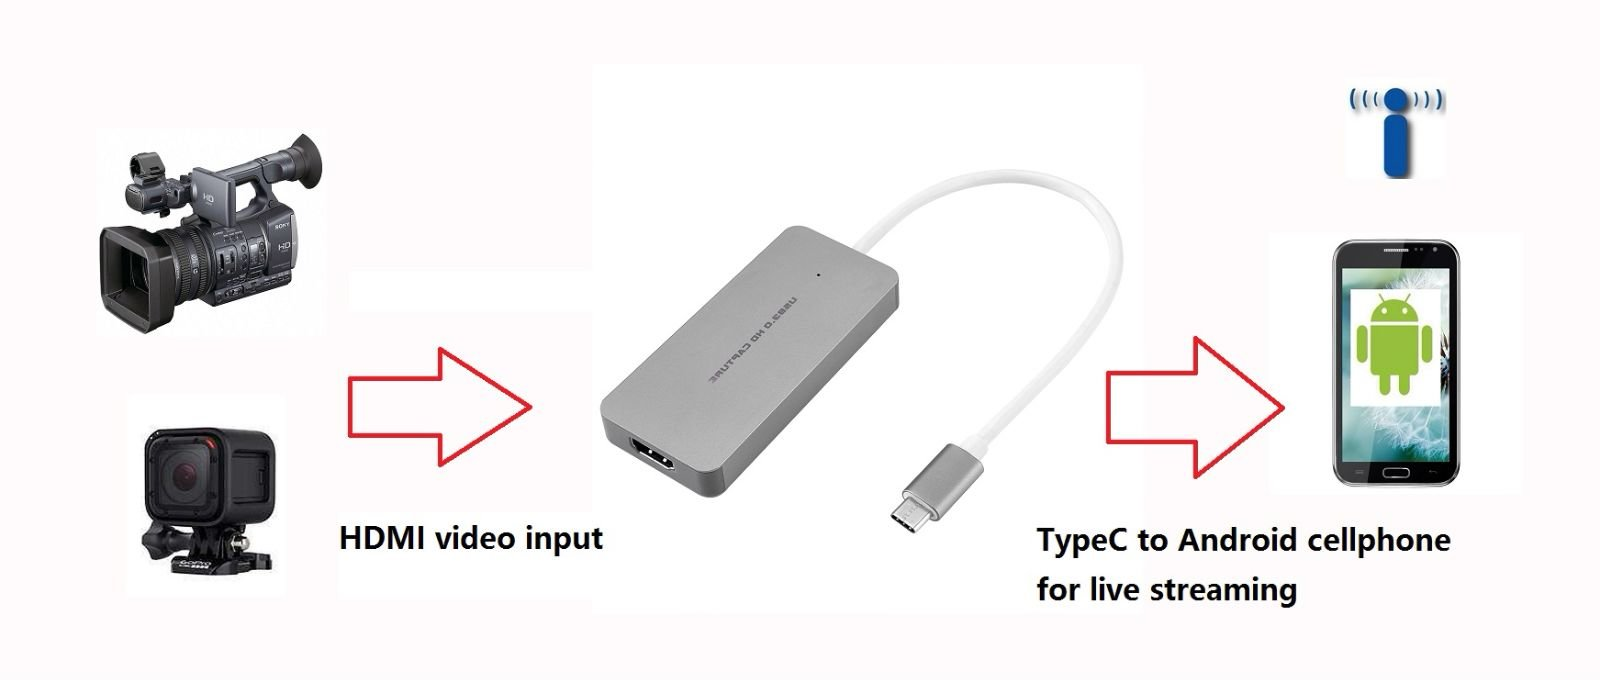 Hot on Amazon HDMI to Type C USB C UVC Capture card dongle 1080P Video recorder support Android phone live streaming ezcap265C